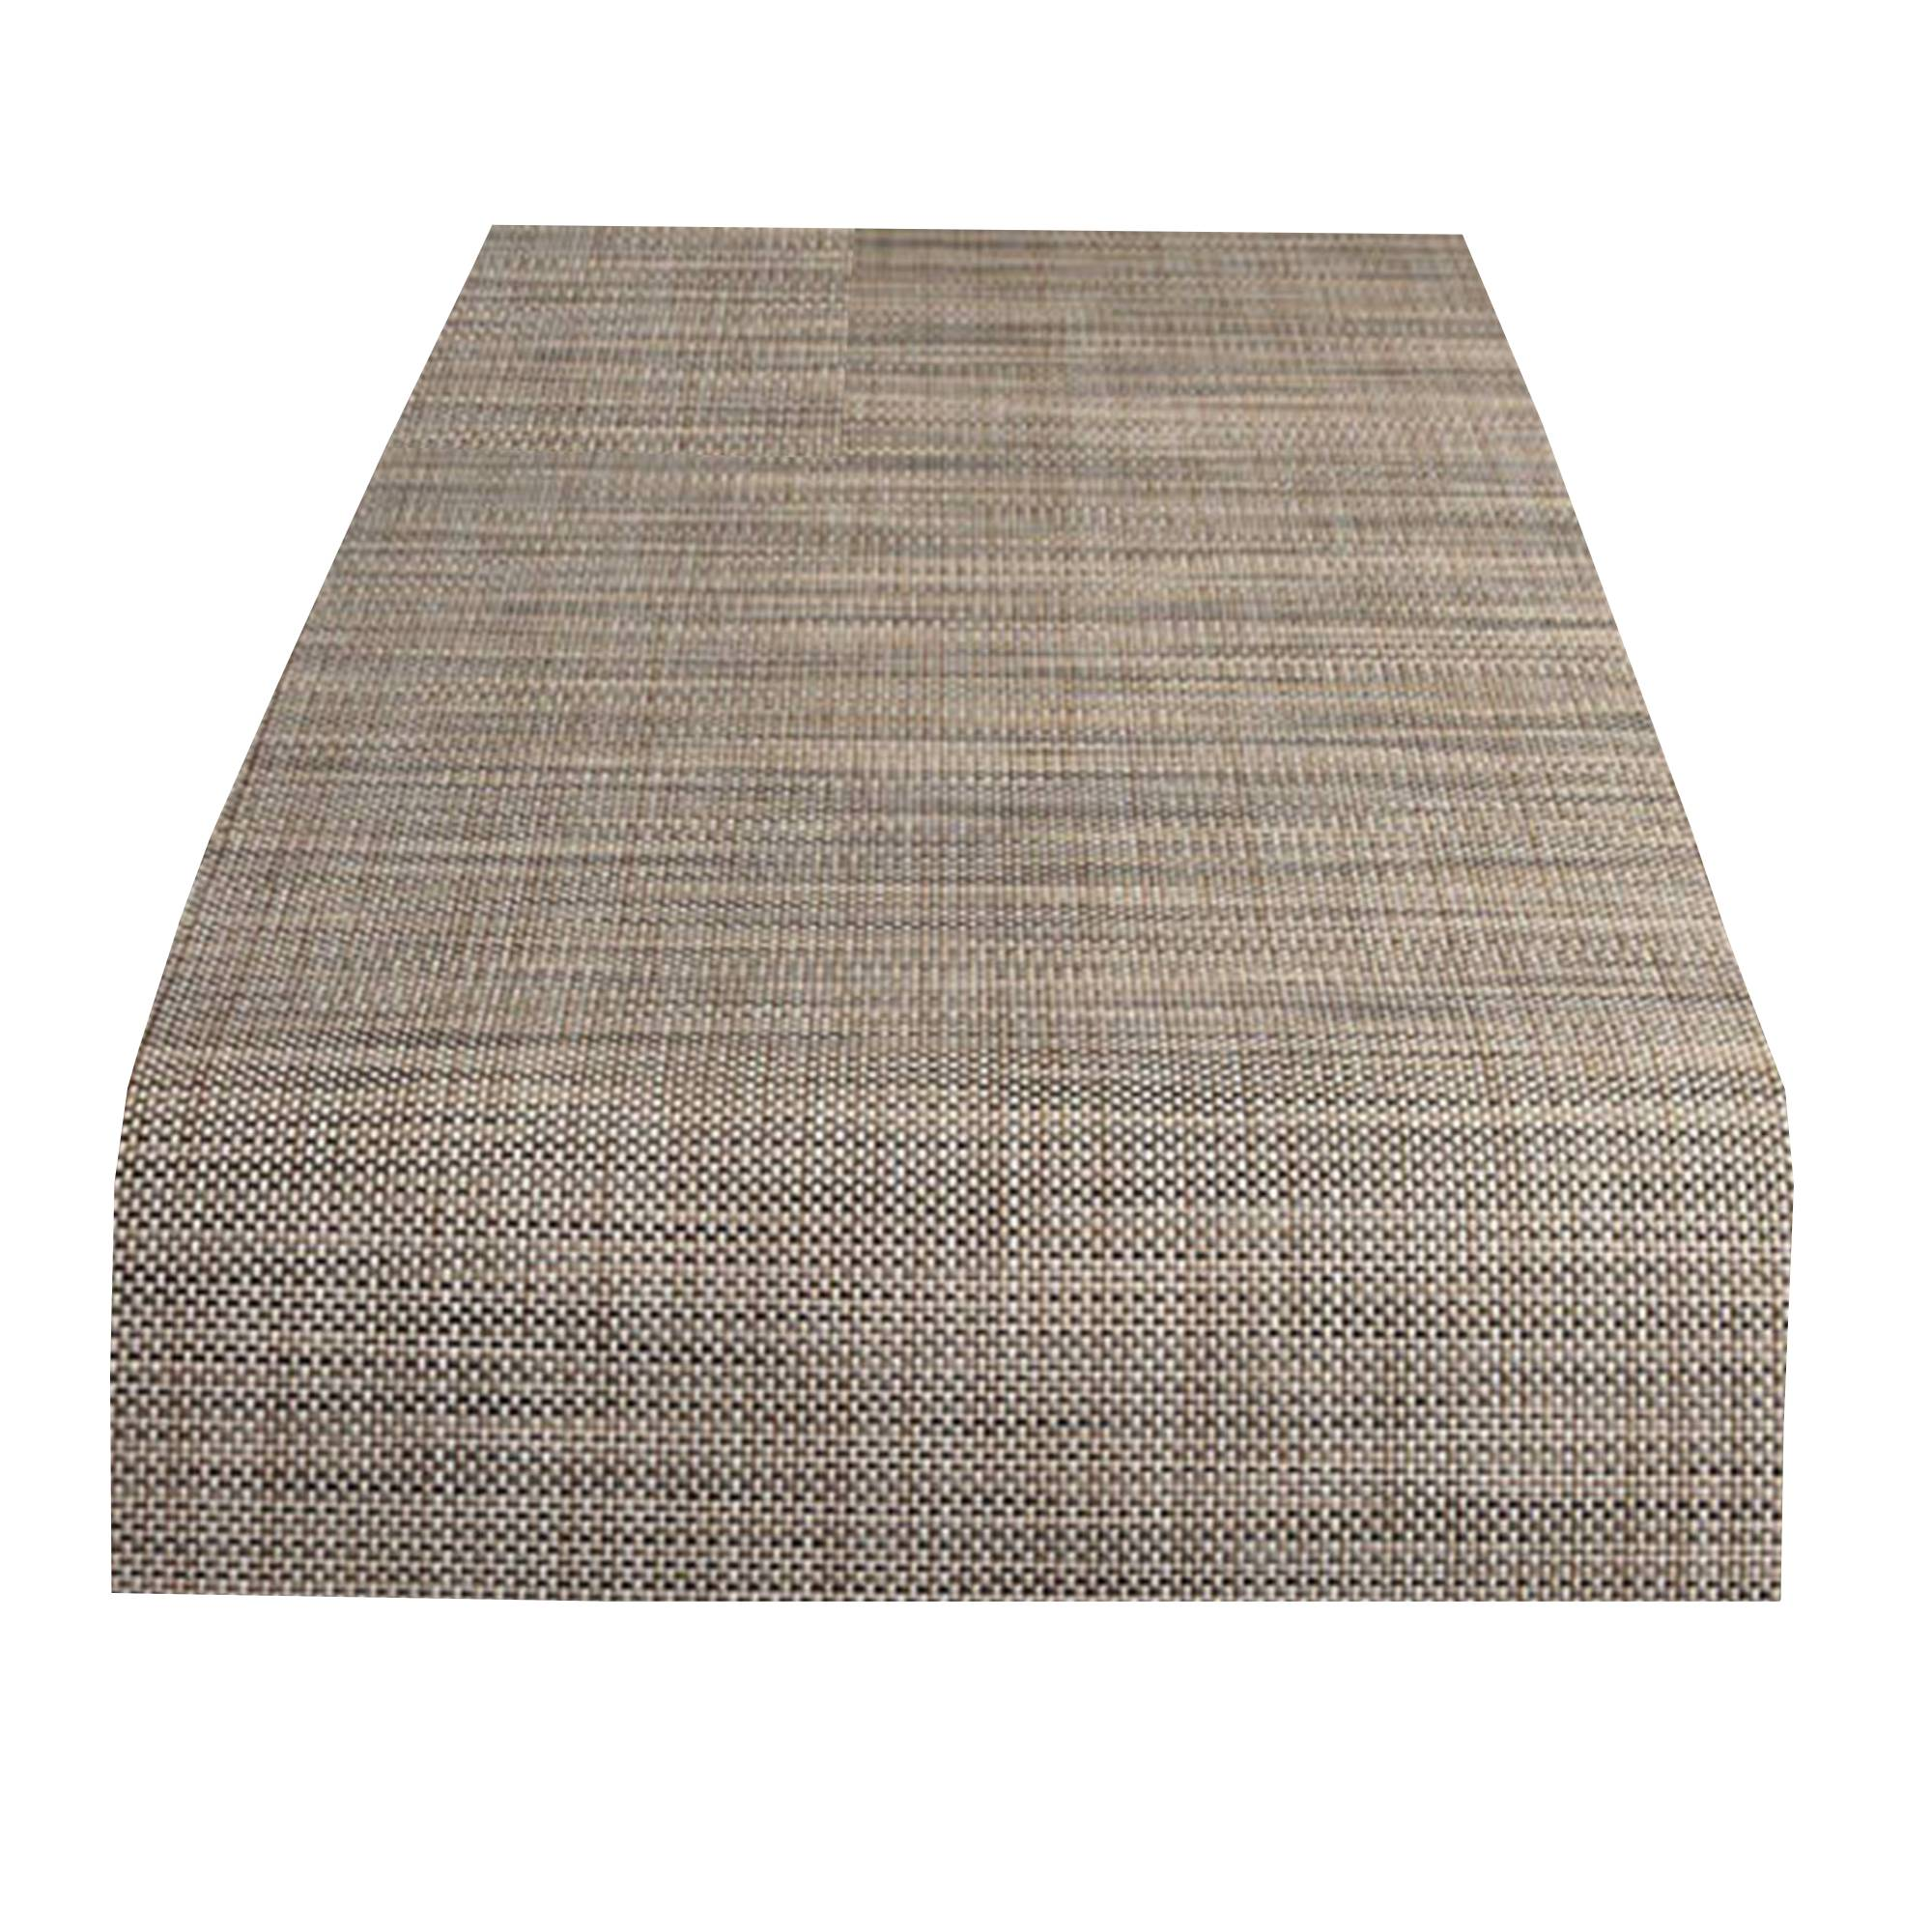 Mini Basketweave Table Runner: Linen